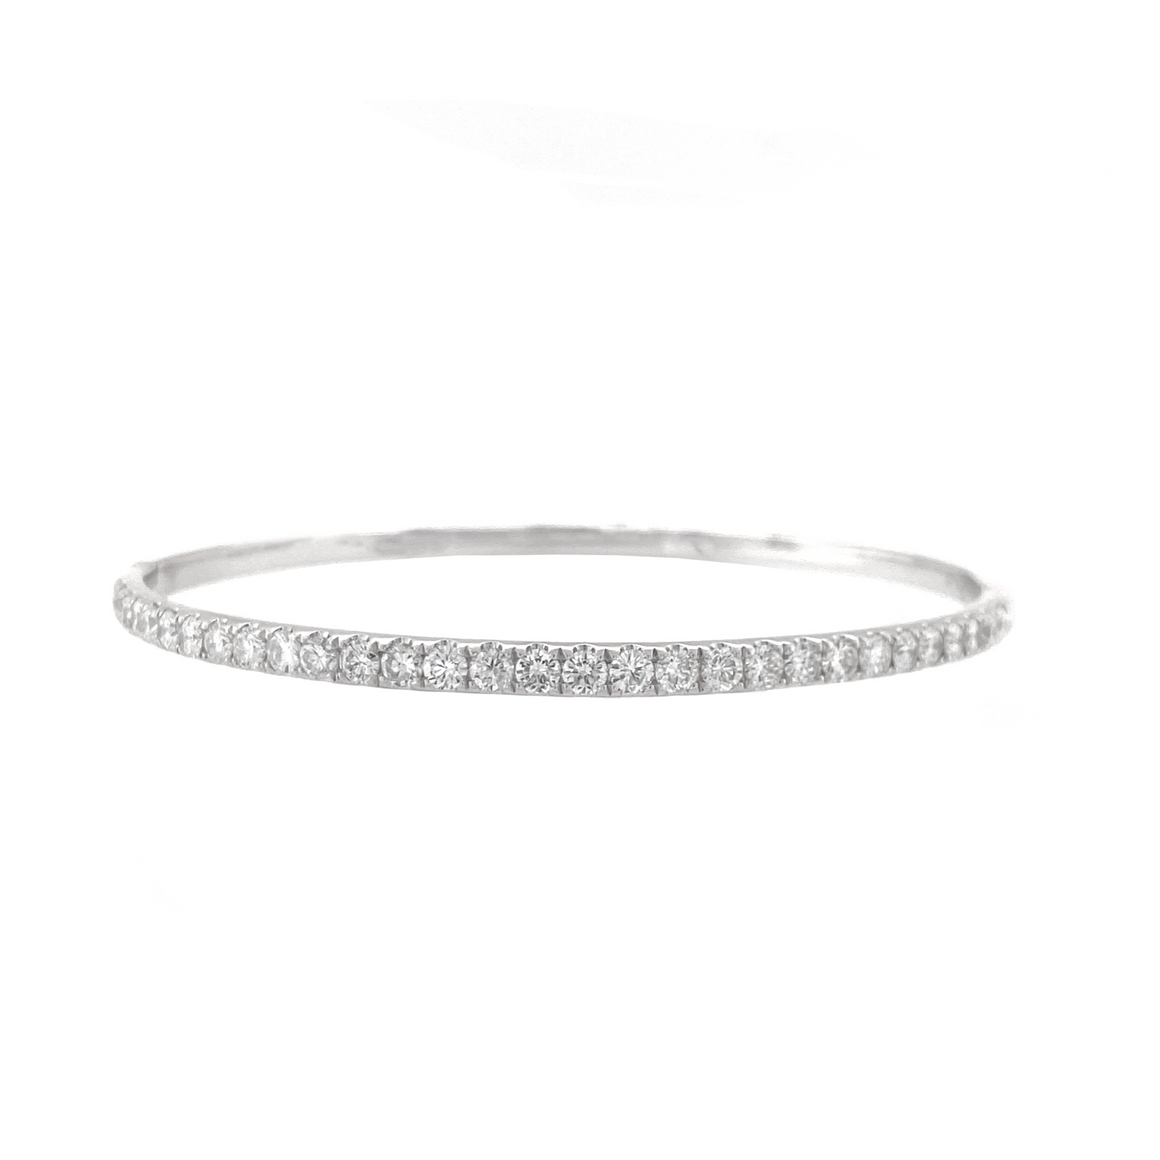 White Gold Hinged Bangle - Lesley Ann Jewels